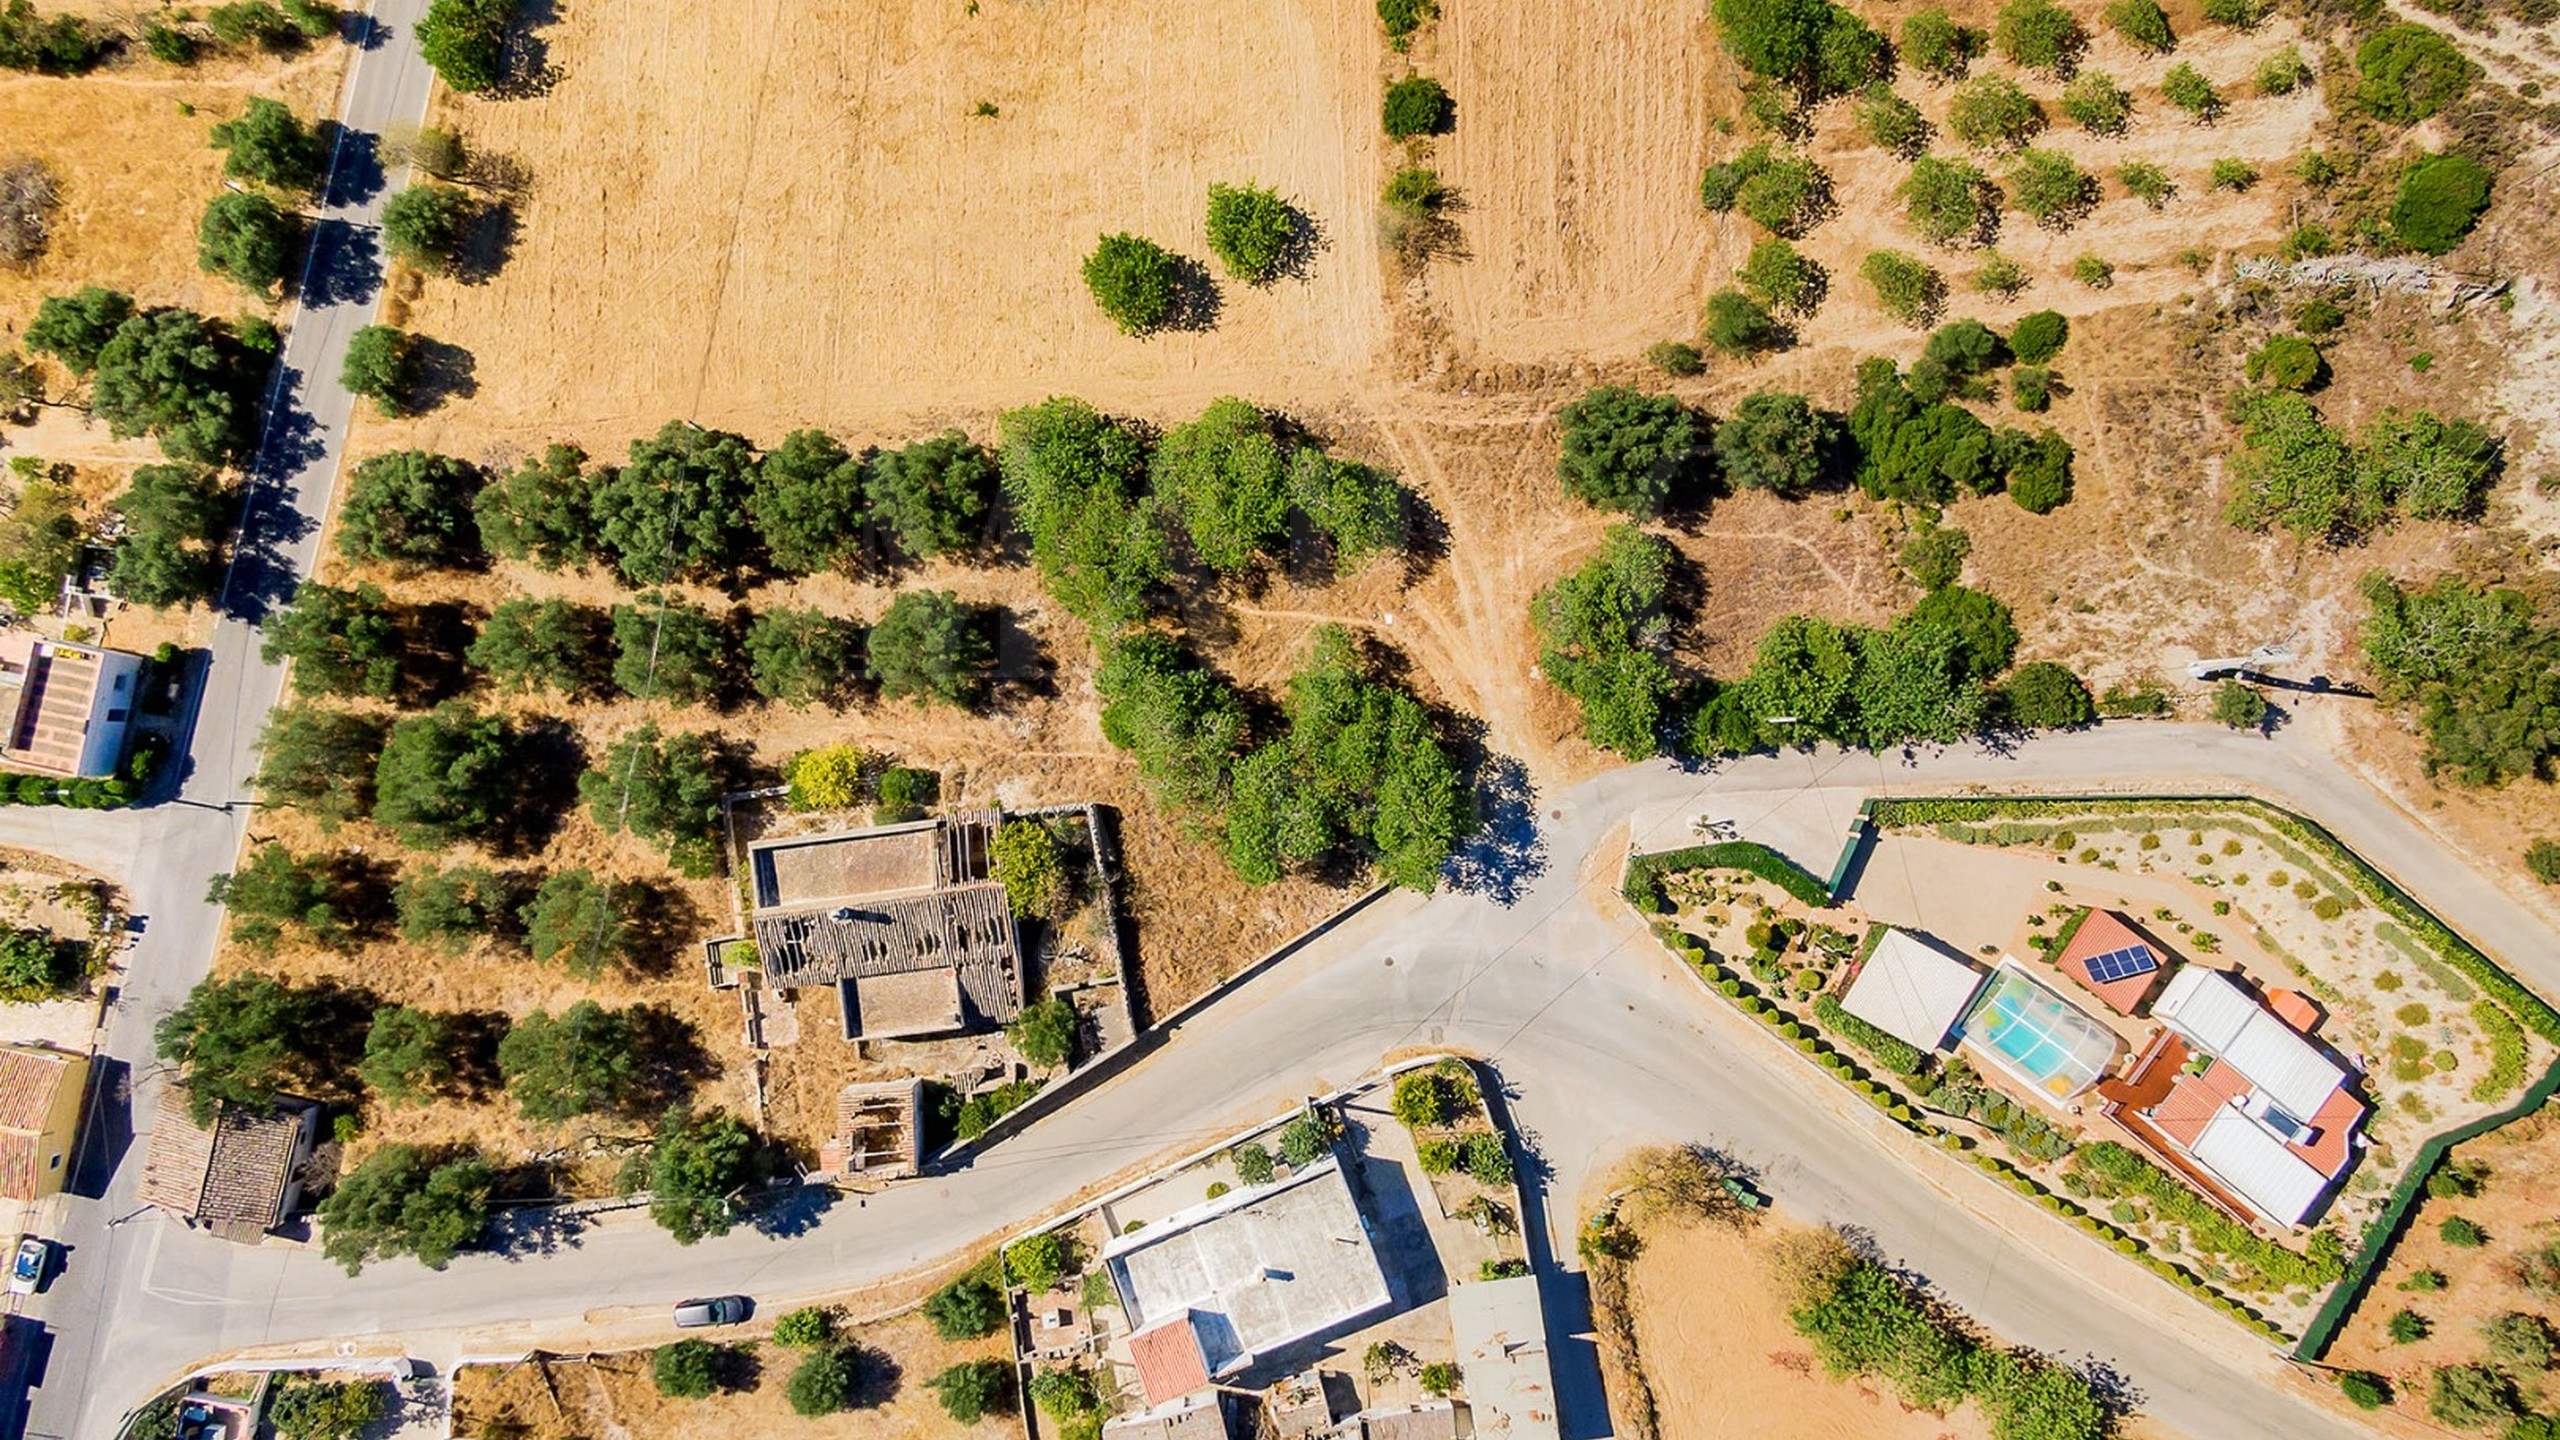 Building plot in the countryside in Algarve